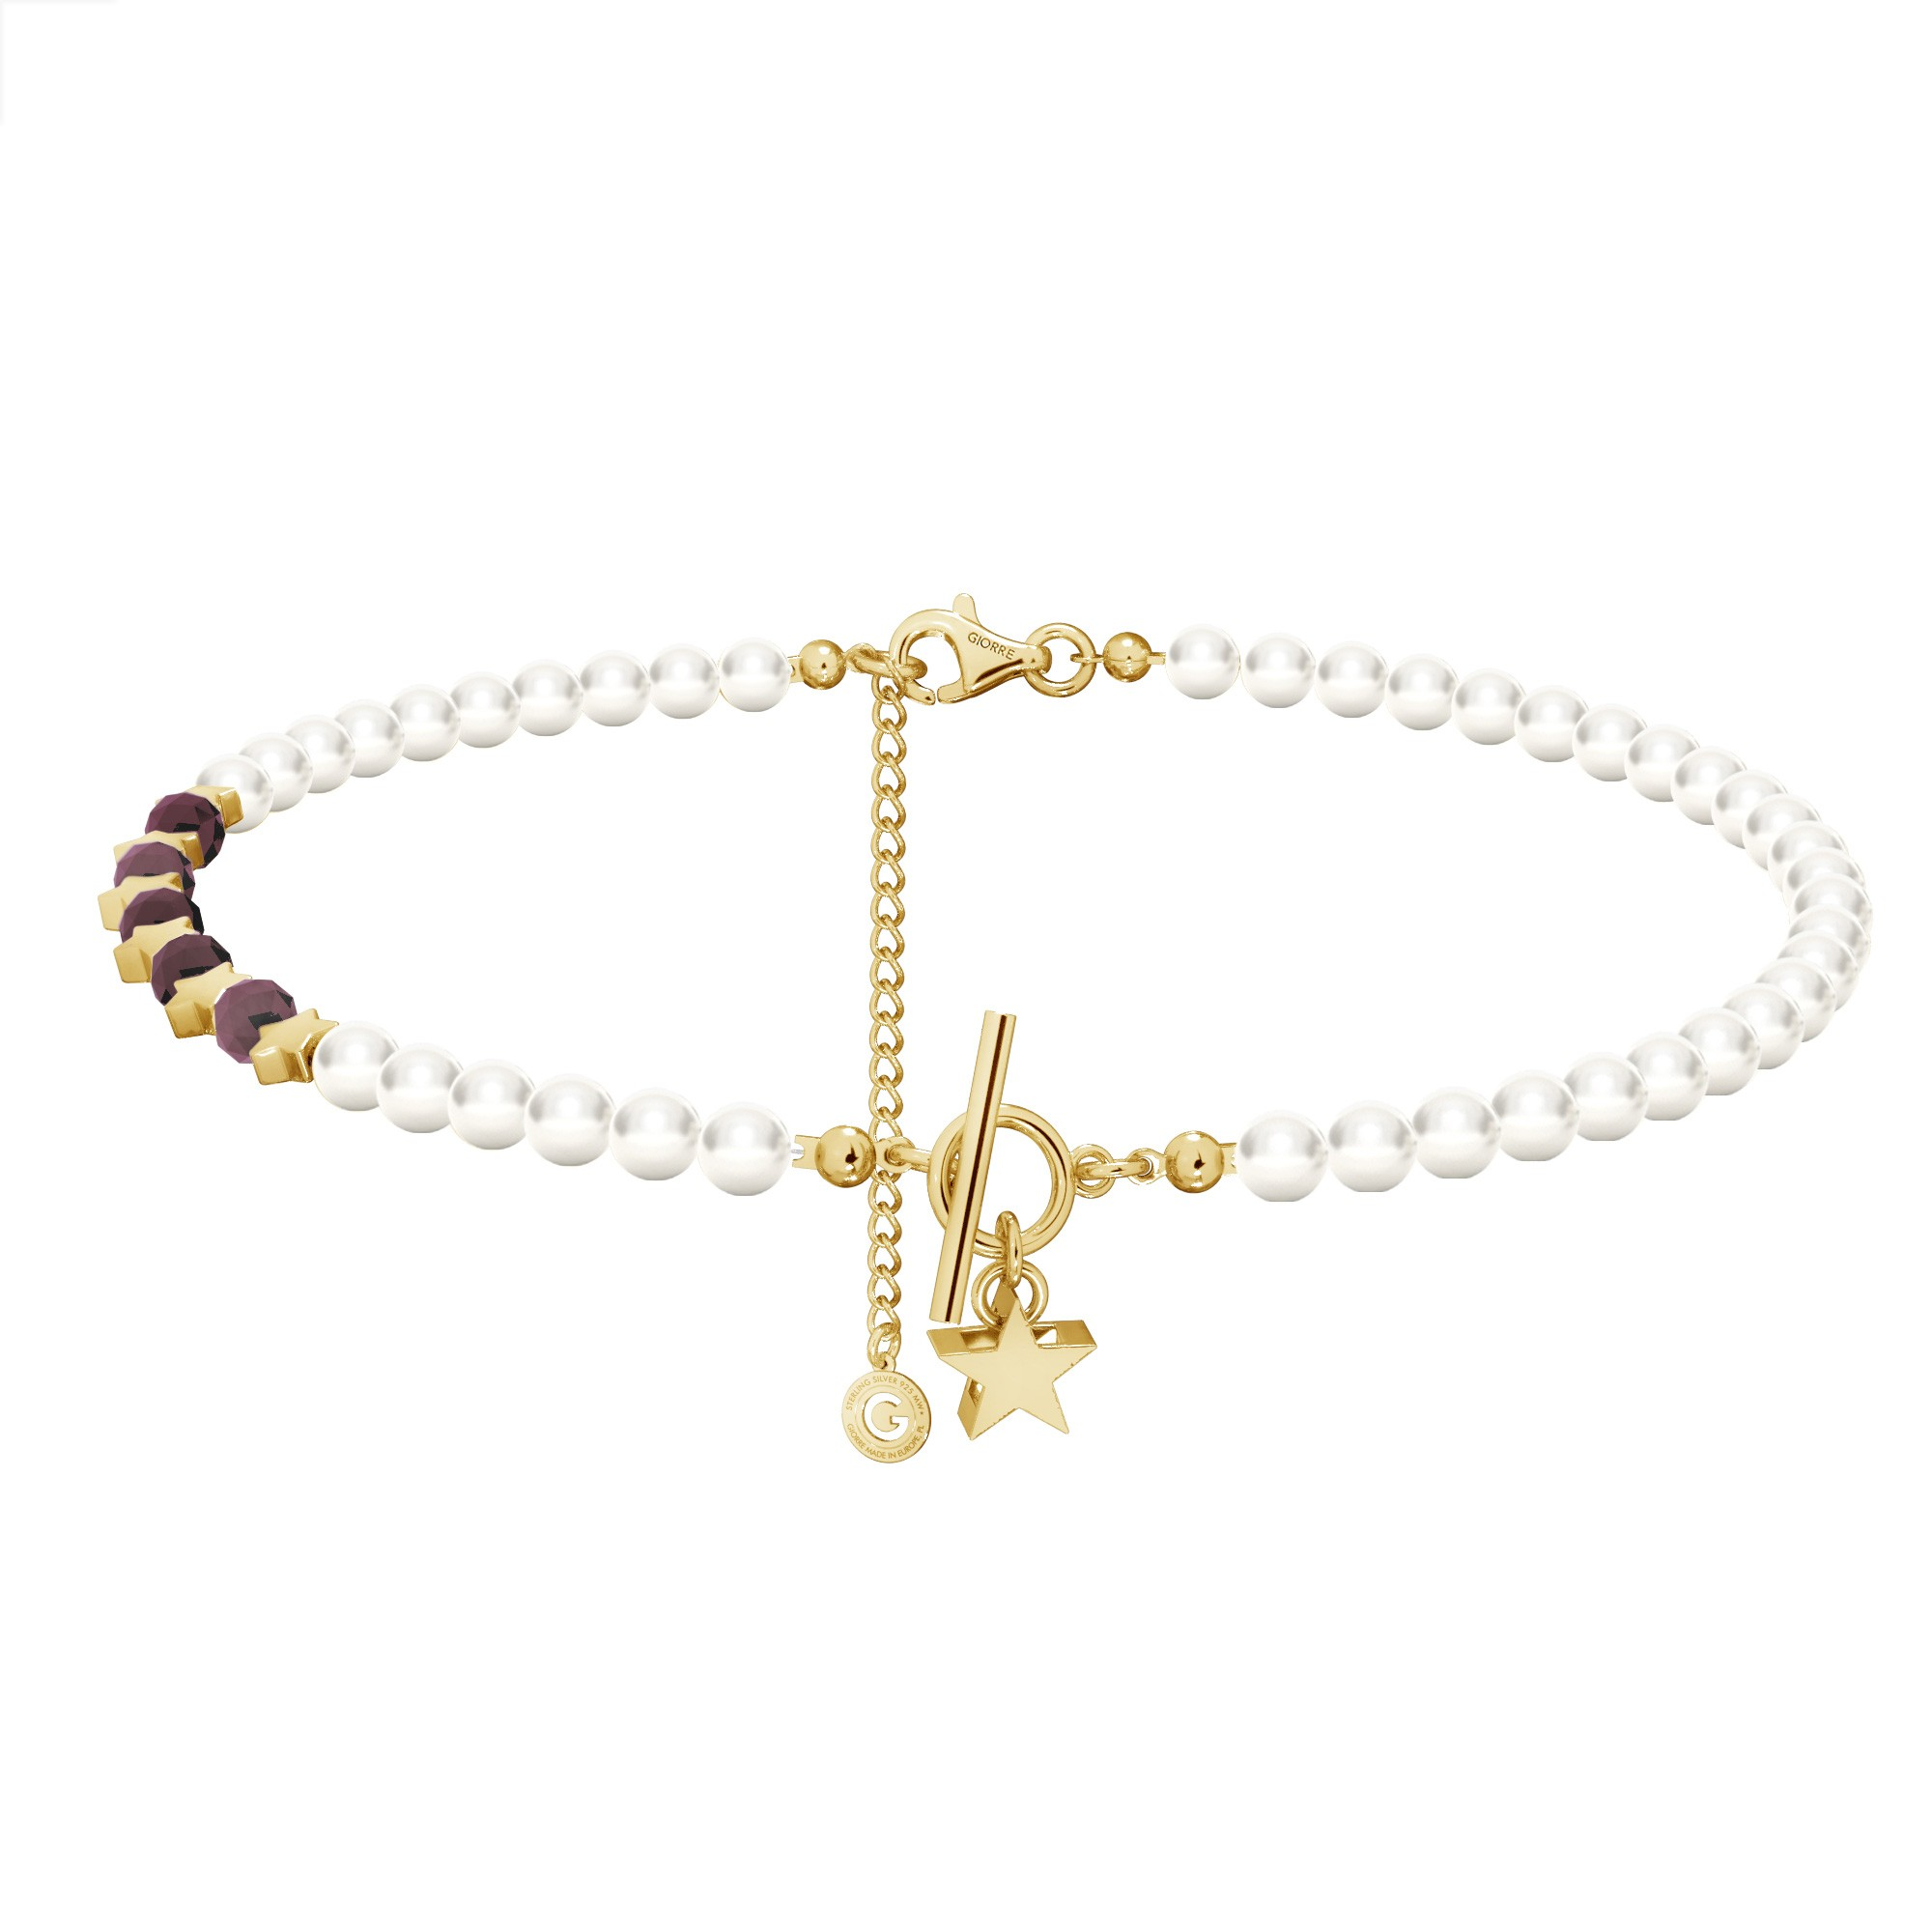 Ruby pearl choker with stars, sterling silver 925